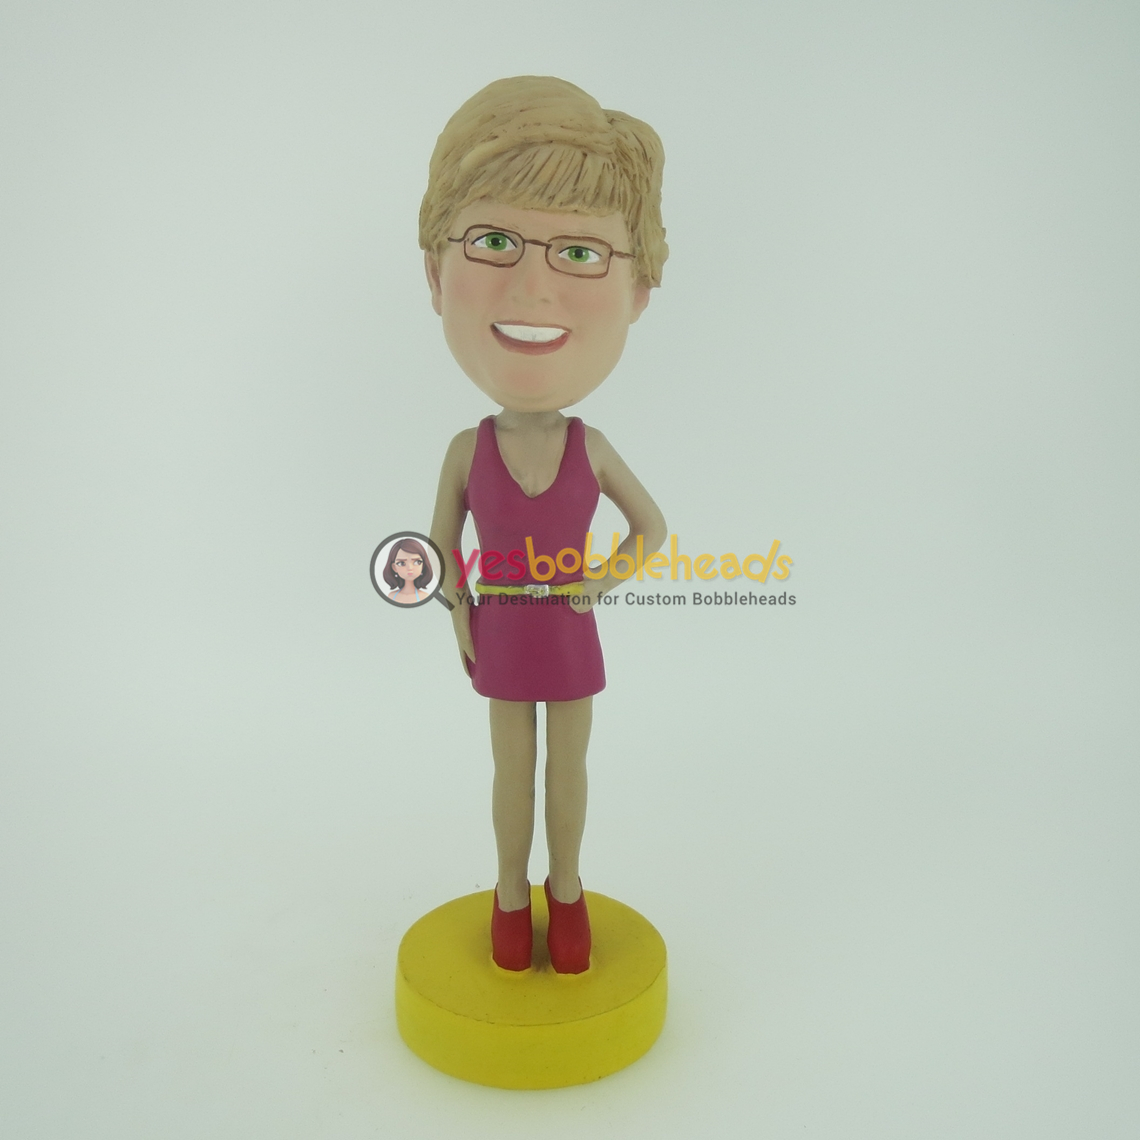 Picture of Custom Bobblehead Doll: Vest Woman